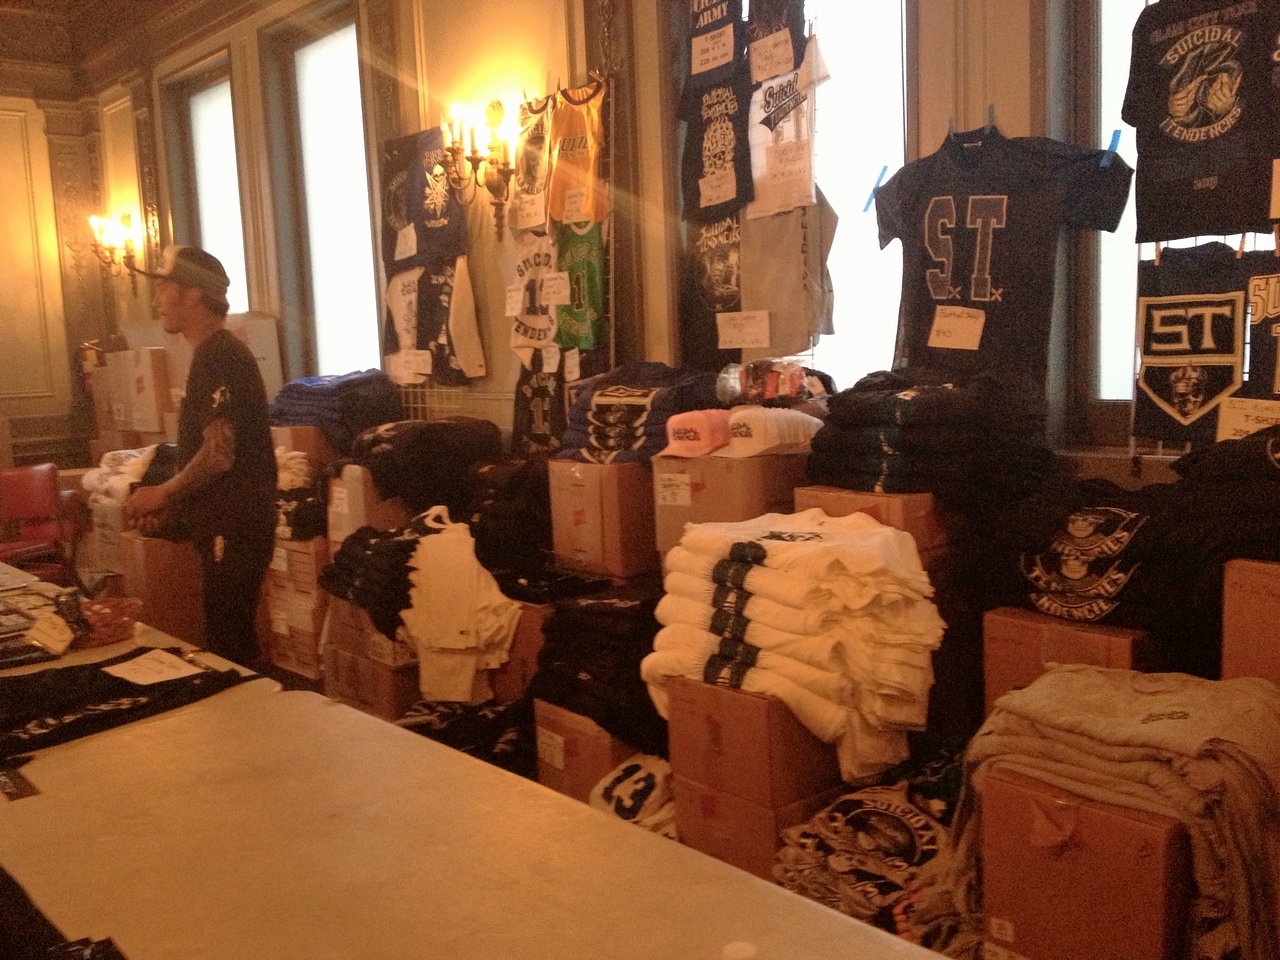 ST merch stand. Usually this space is for 3-4 bands